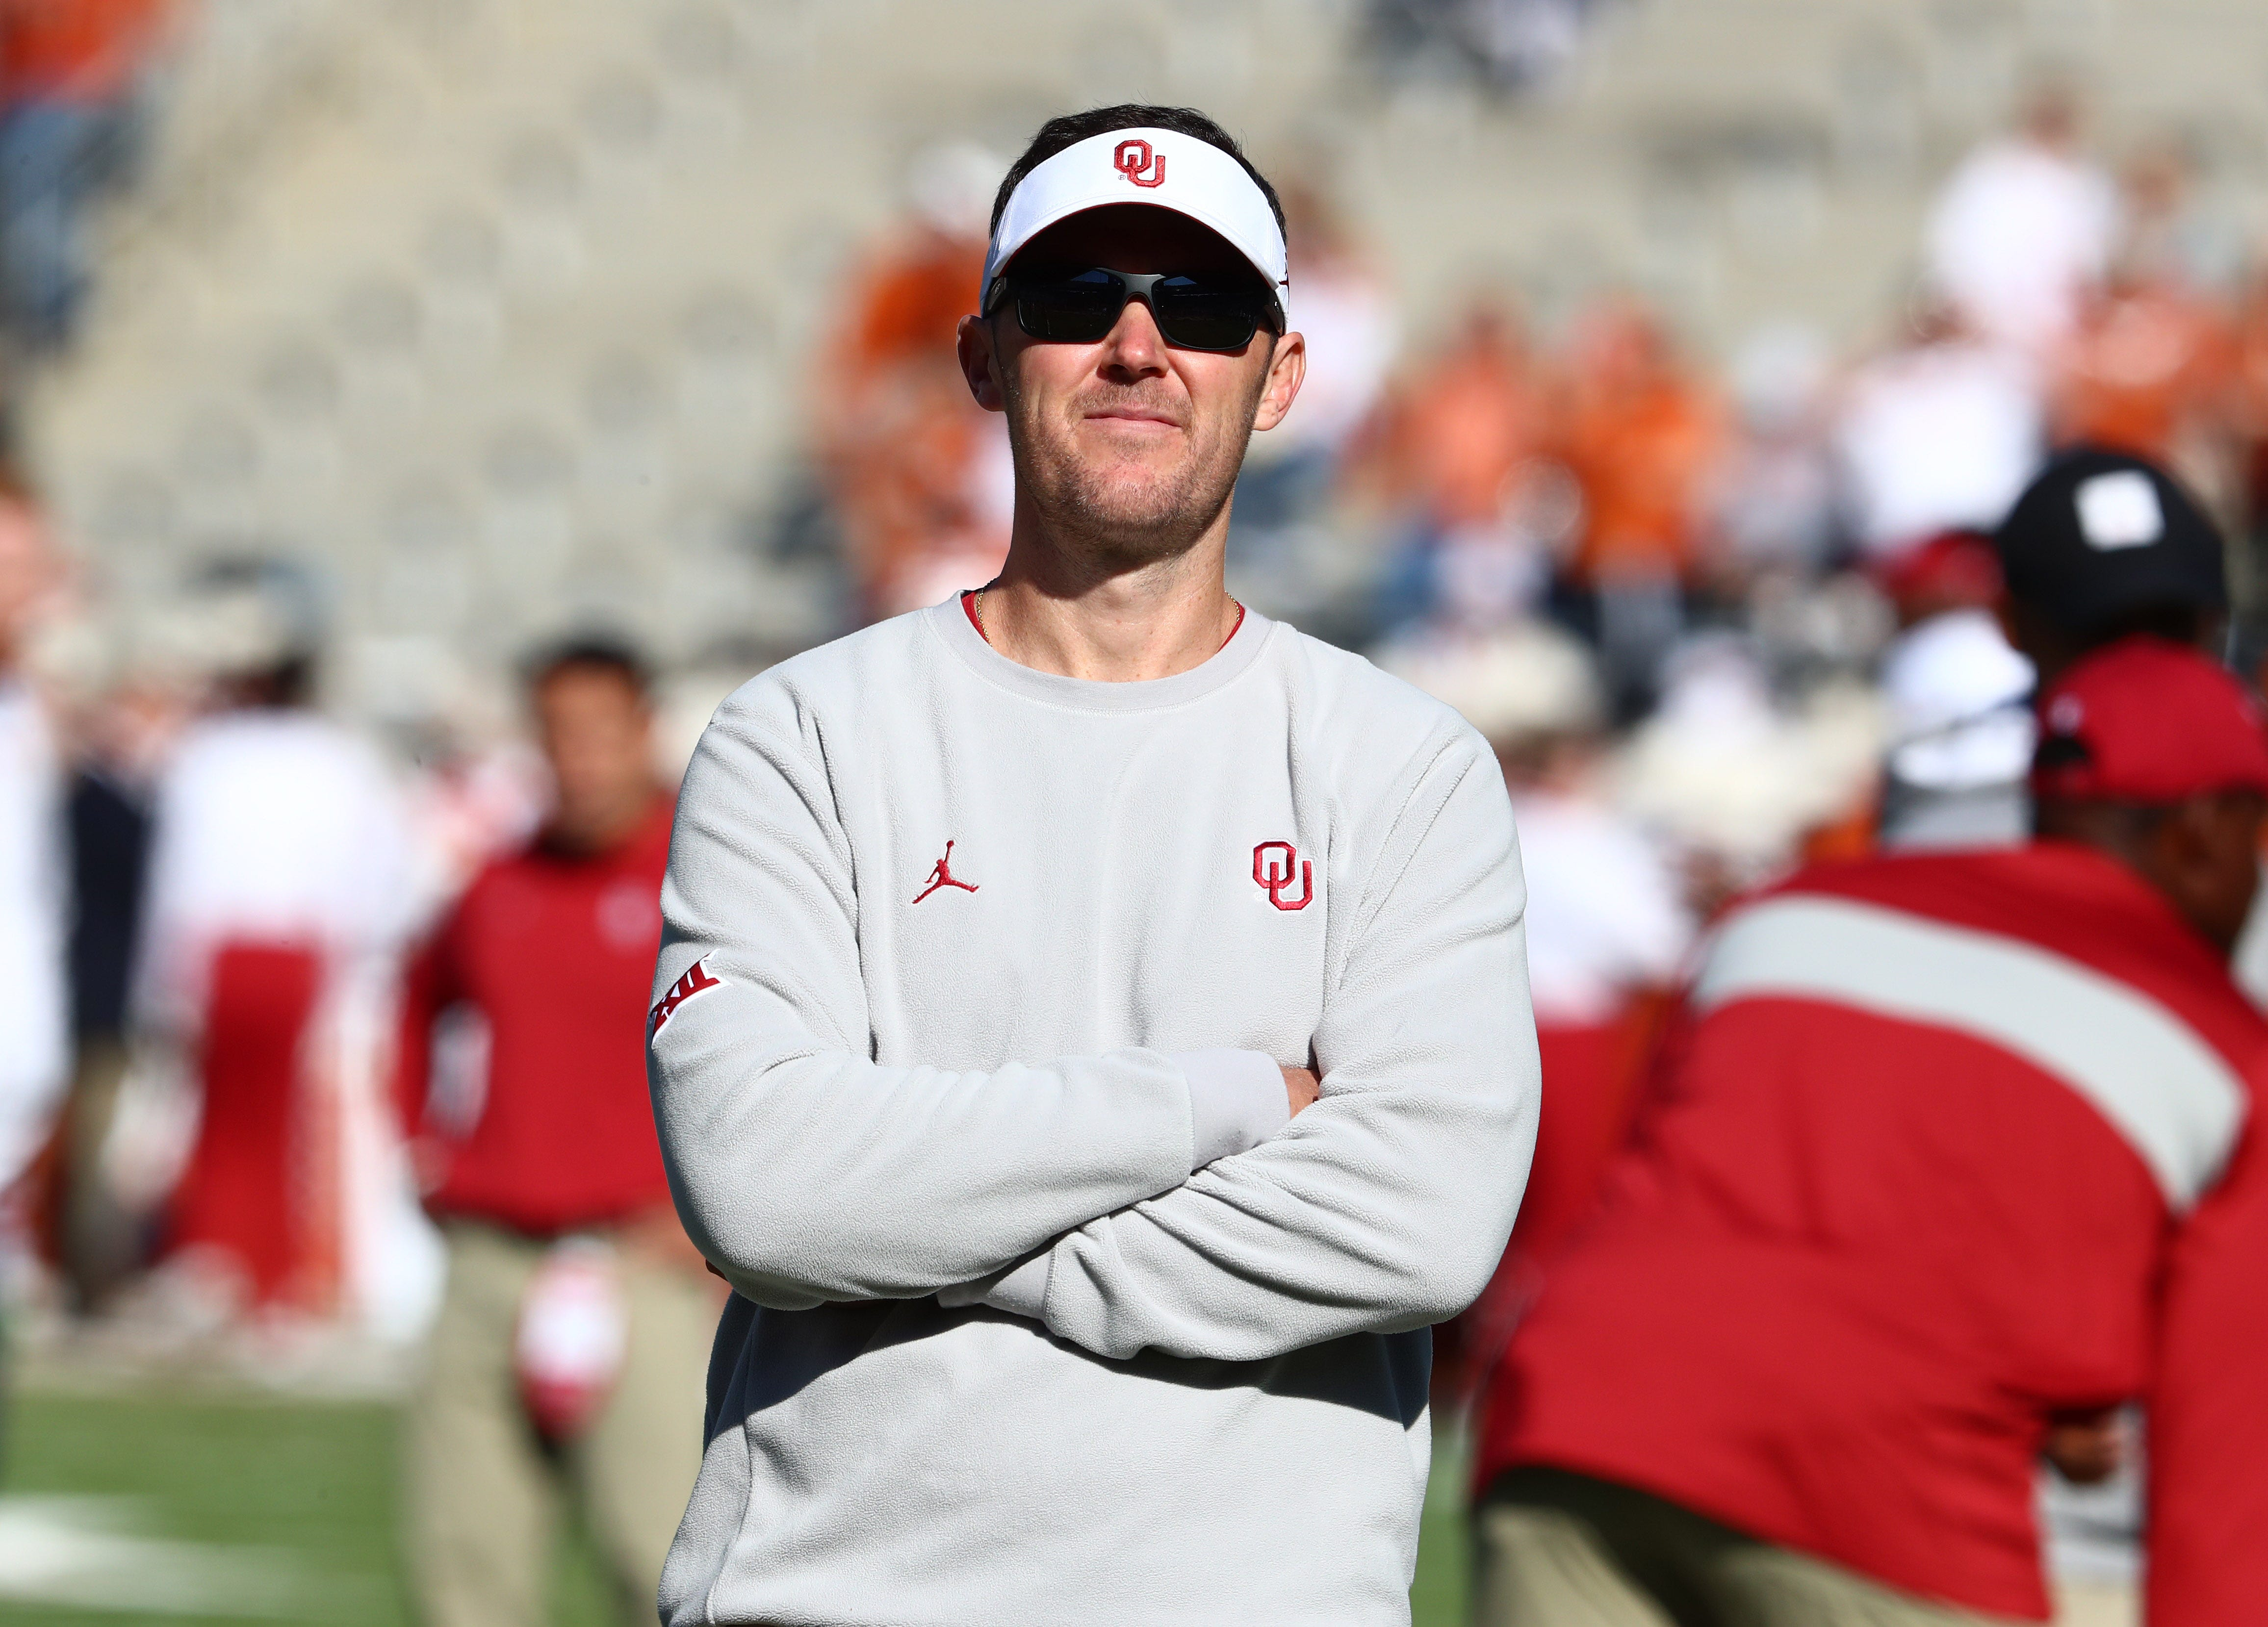 Oklahoma coach Lincoln Riley: 'All lives can't matter until the black lives do too'